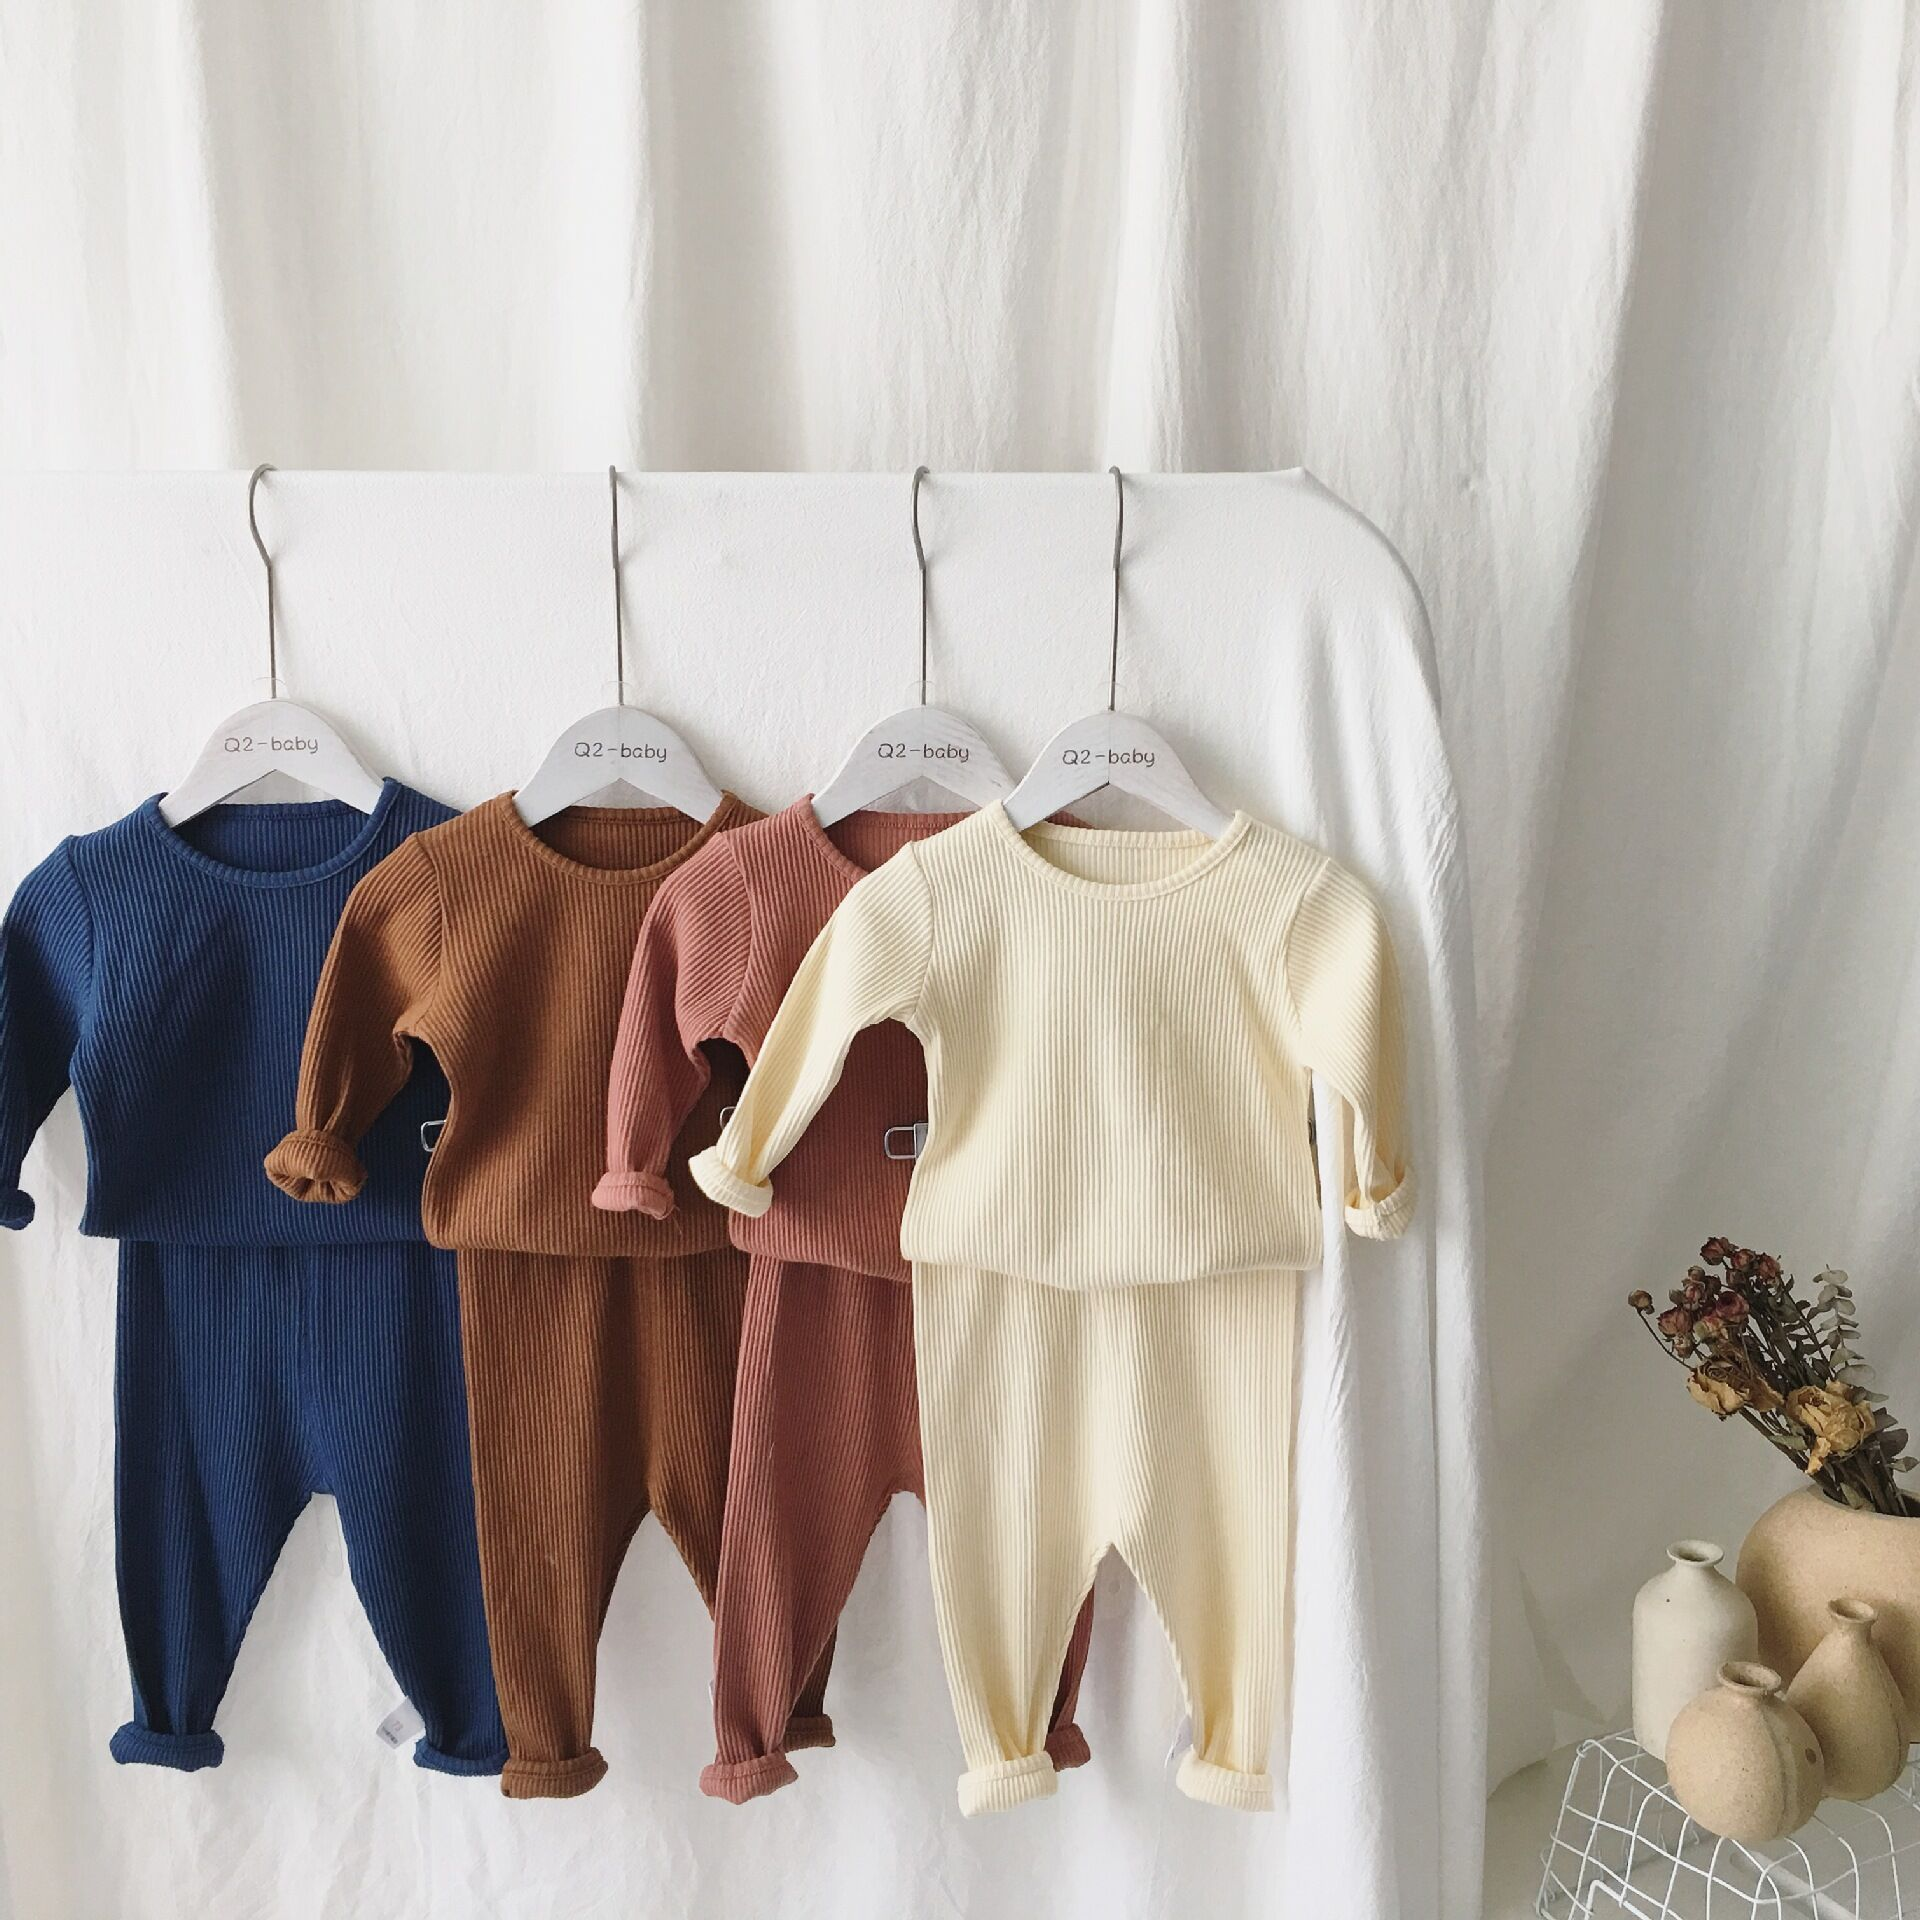 High Quality 7 Pieces Set Newborn Baby Clothes Solid Colour Ribbed Baby  Clothing - Buy Ribbed Baby Clothing,Newborn Baby Clothes,Baby Pajamas  Product